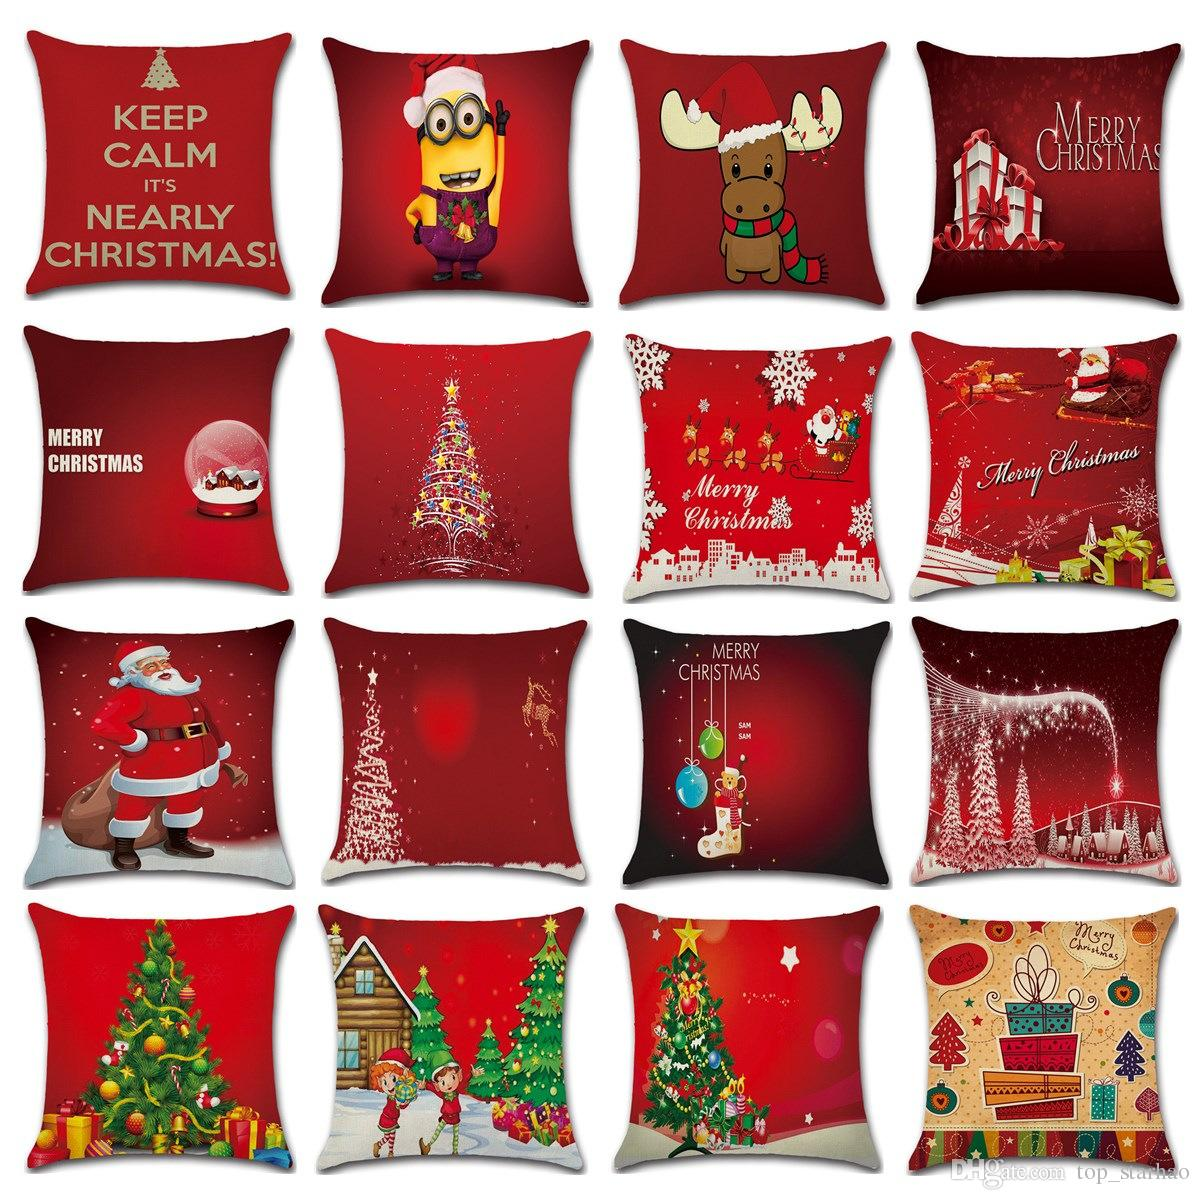 4ac4e35ad8 2017 Christmas Pillow Case Xmas Linen Pillow Cover Reindeer Elk Throw  Pillow Cushion Covers Tree Decorative Pillows Covers 15 Designs XL 400 Blue  Pillow ...